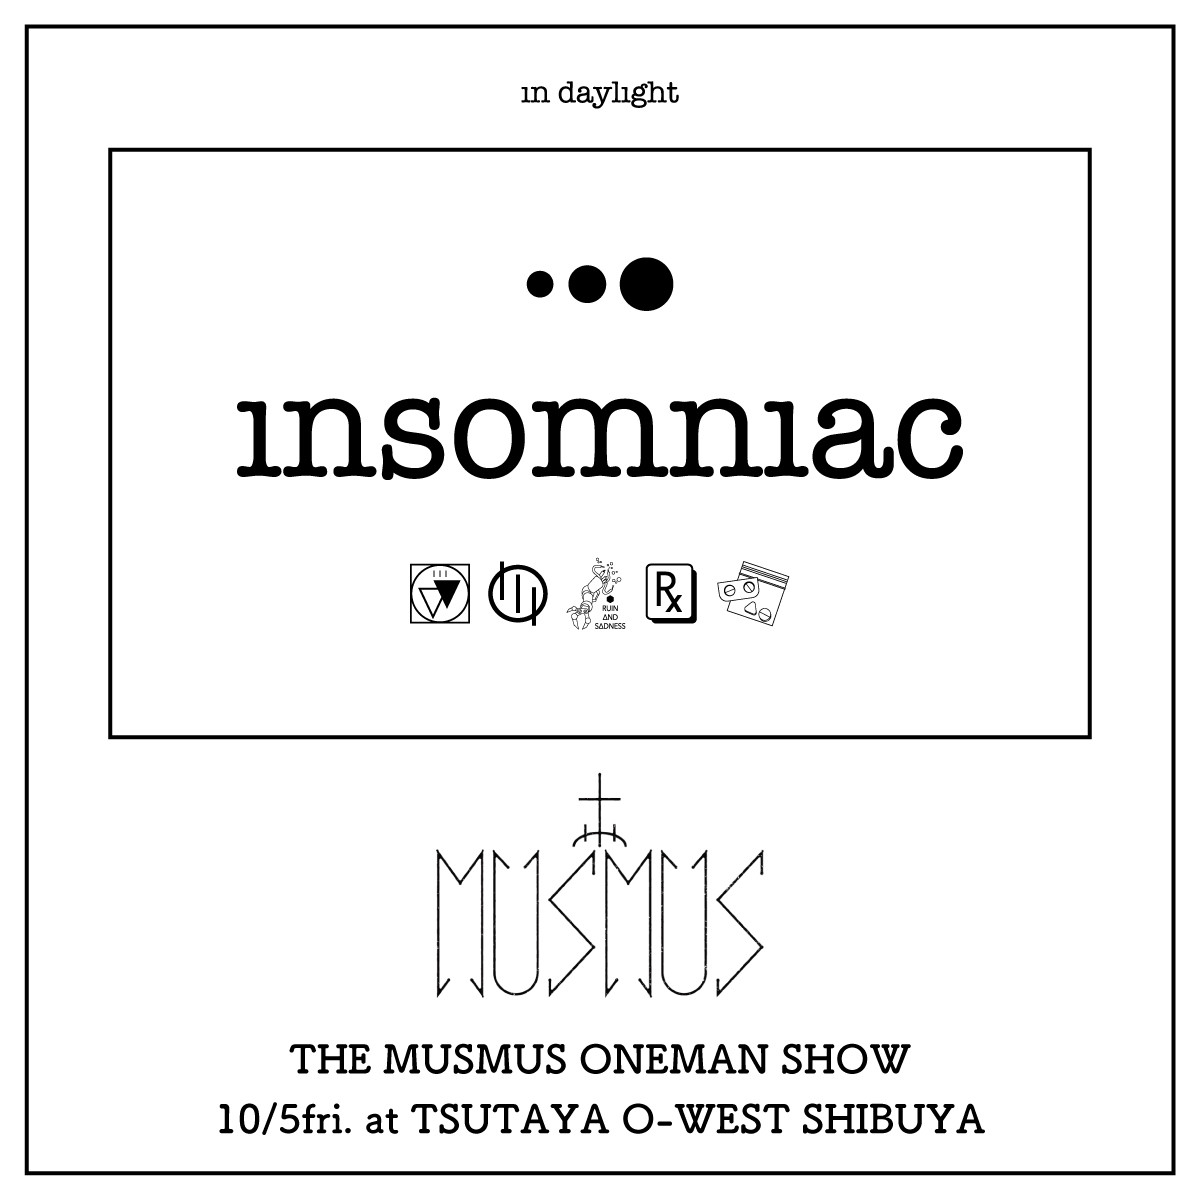 insomniac in THE MUSMUS ONEMAN SHOW